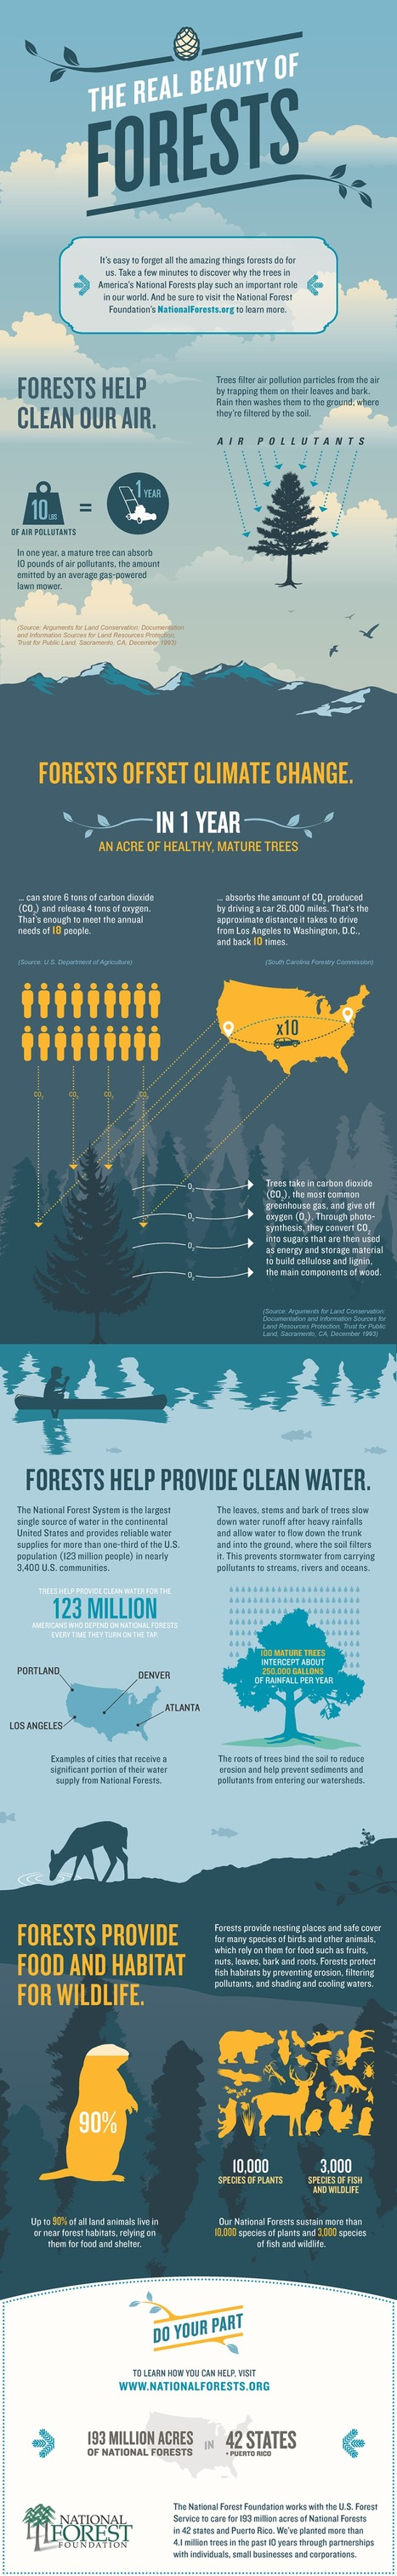 The Real Beauty of Forests - An Infographic from the National Forest Foundation | JOIN SCOOP.IT AND FOLLOW ME ON SCOOP.IT | Scoop.it